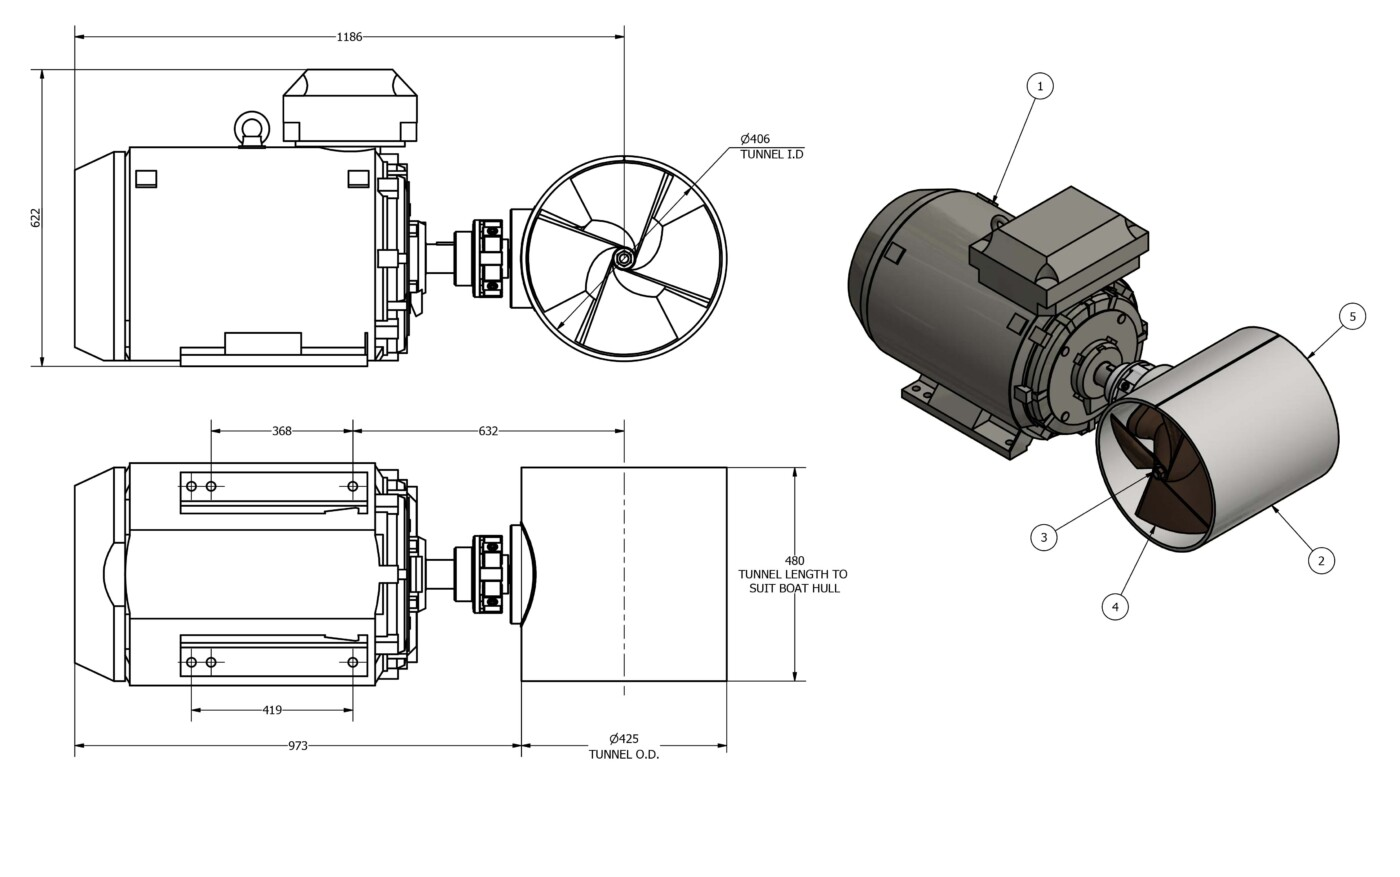 OMS-electric-Tunnel-thruster-e-0400-T